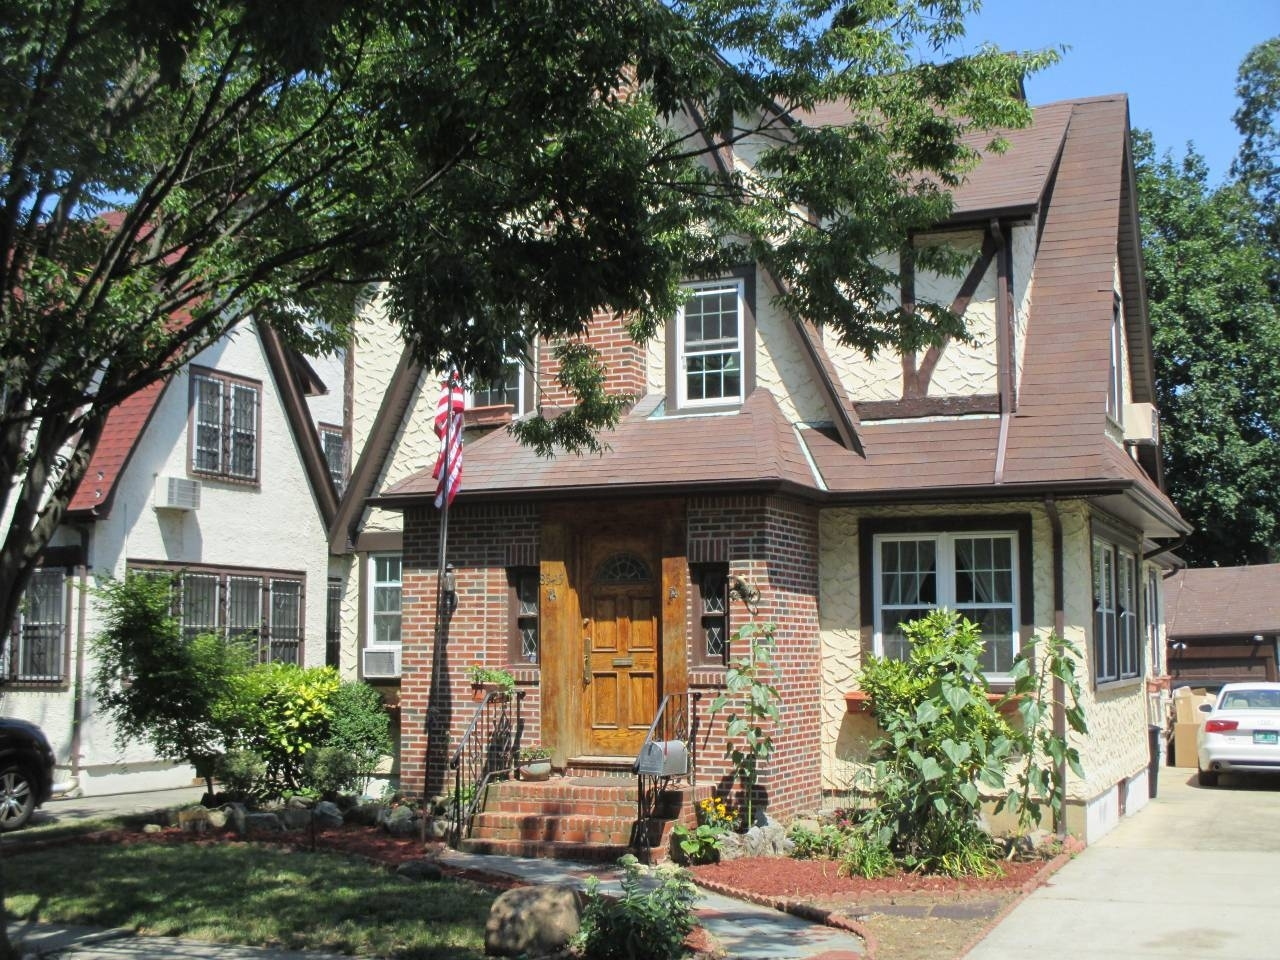 You Can Now Rent Donald Trumps's Childhood Home On AirBNB